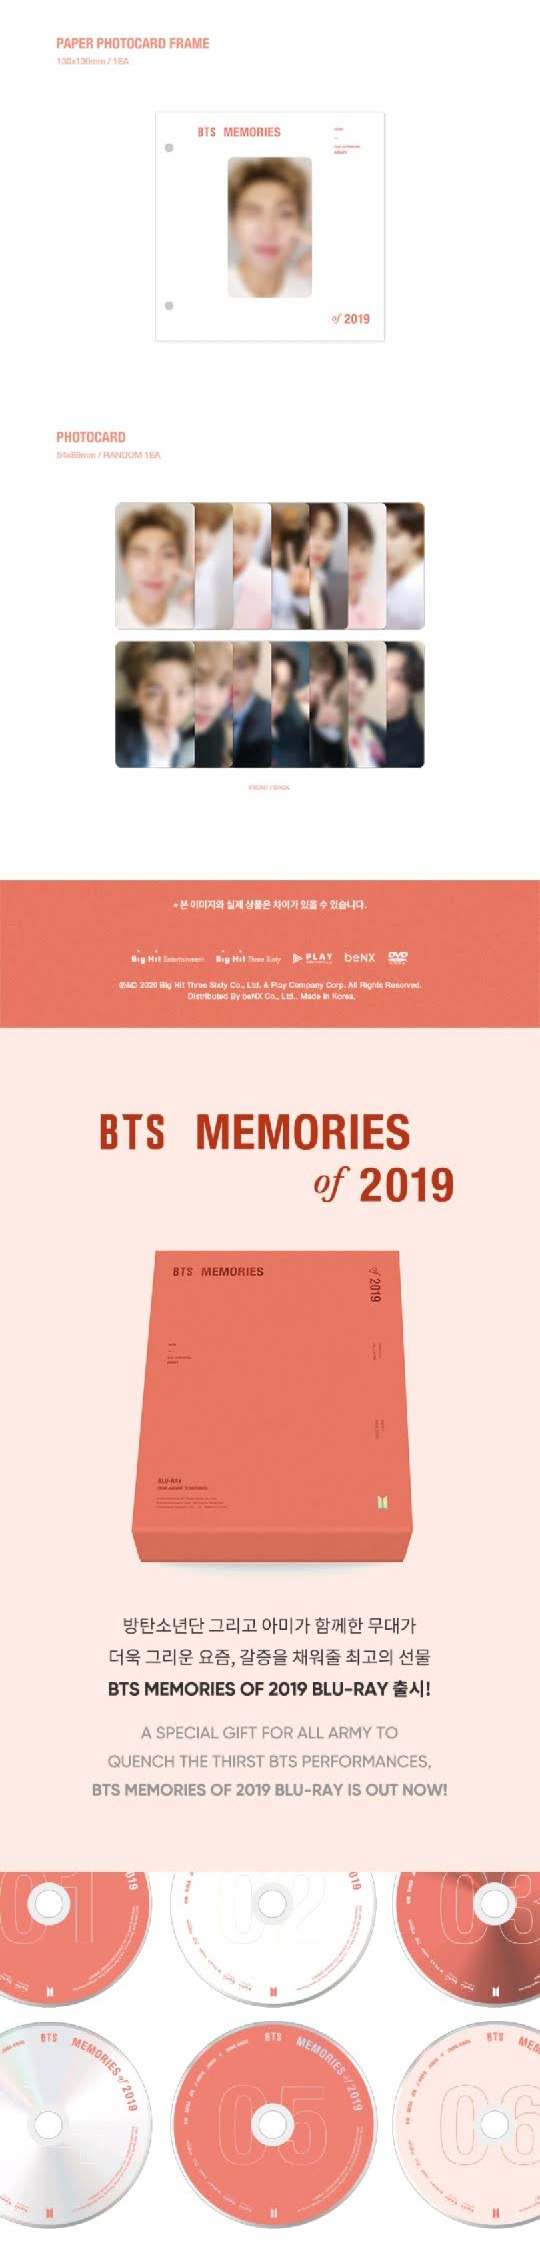 bts-memories_of_2019-2